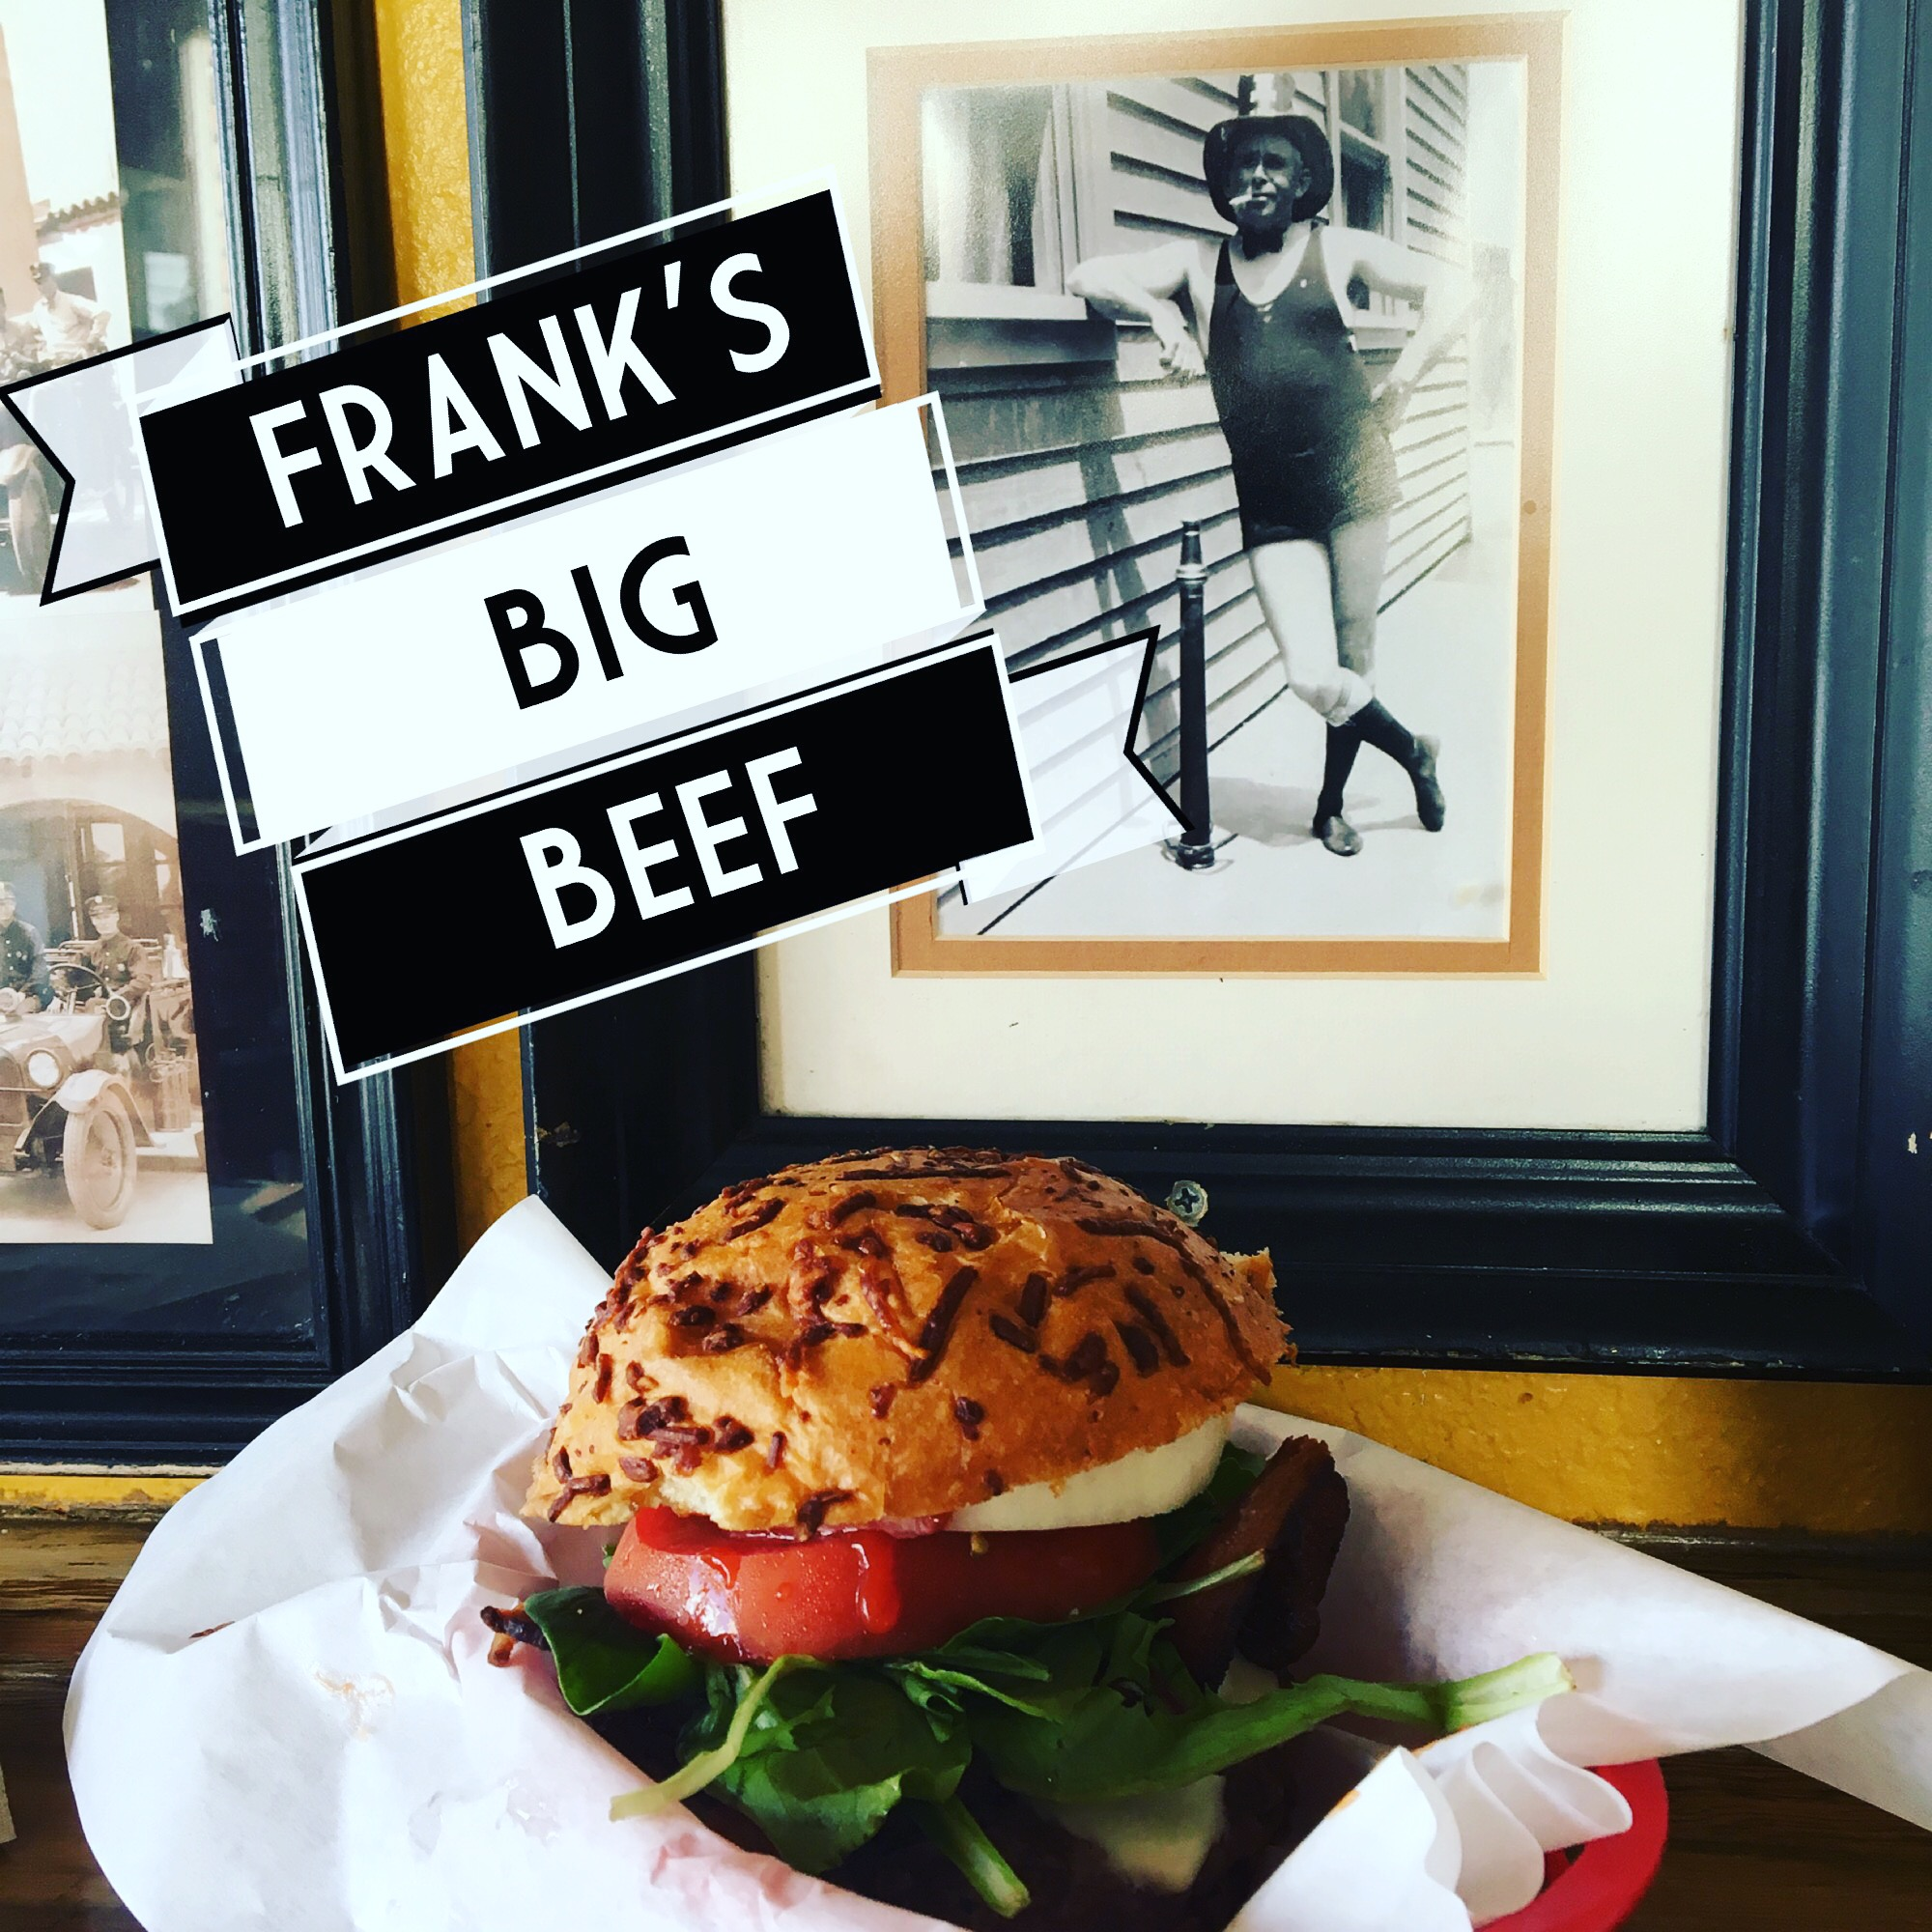 Crockers Franks Big Beef Wins Best Burger on Balboa Island